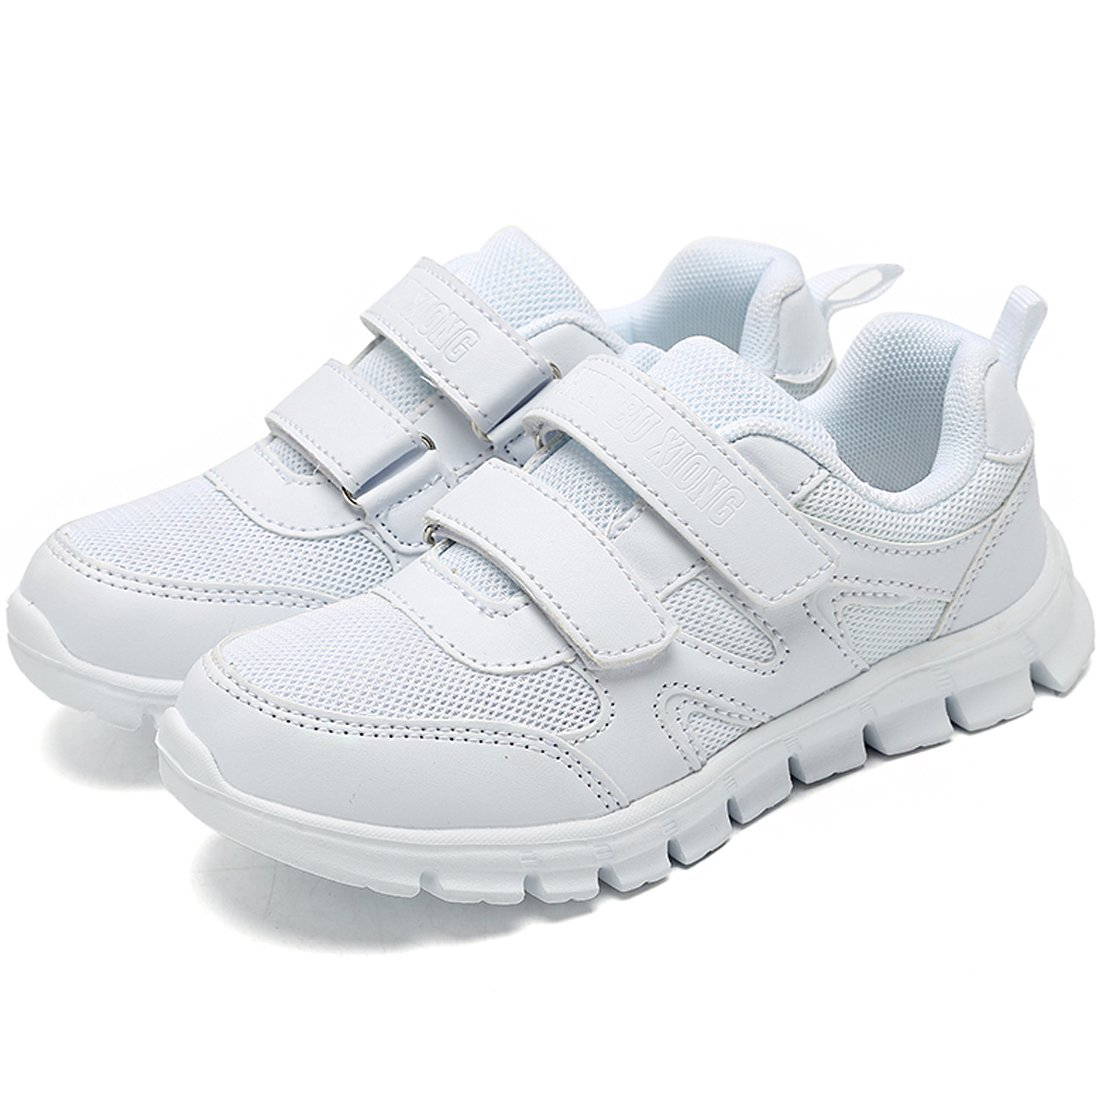 Jinouyy Boys Girls Fashion Sports Sneaker Breathable Mesh Athletic Running Shoes White Size 10.5 M US Little Kid